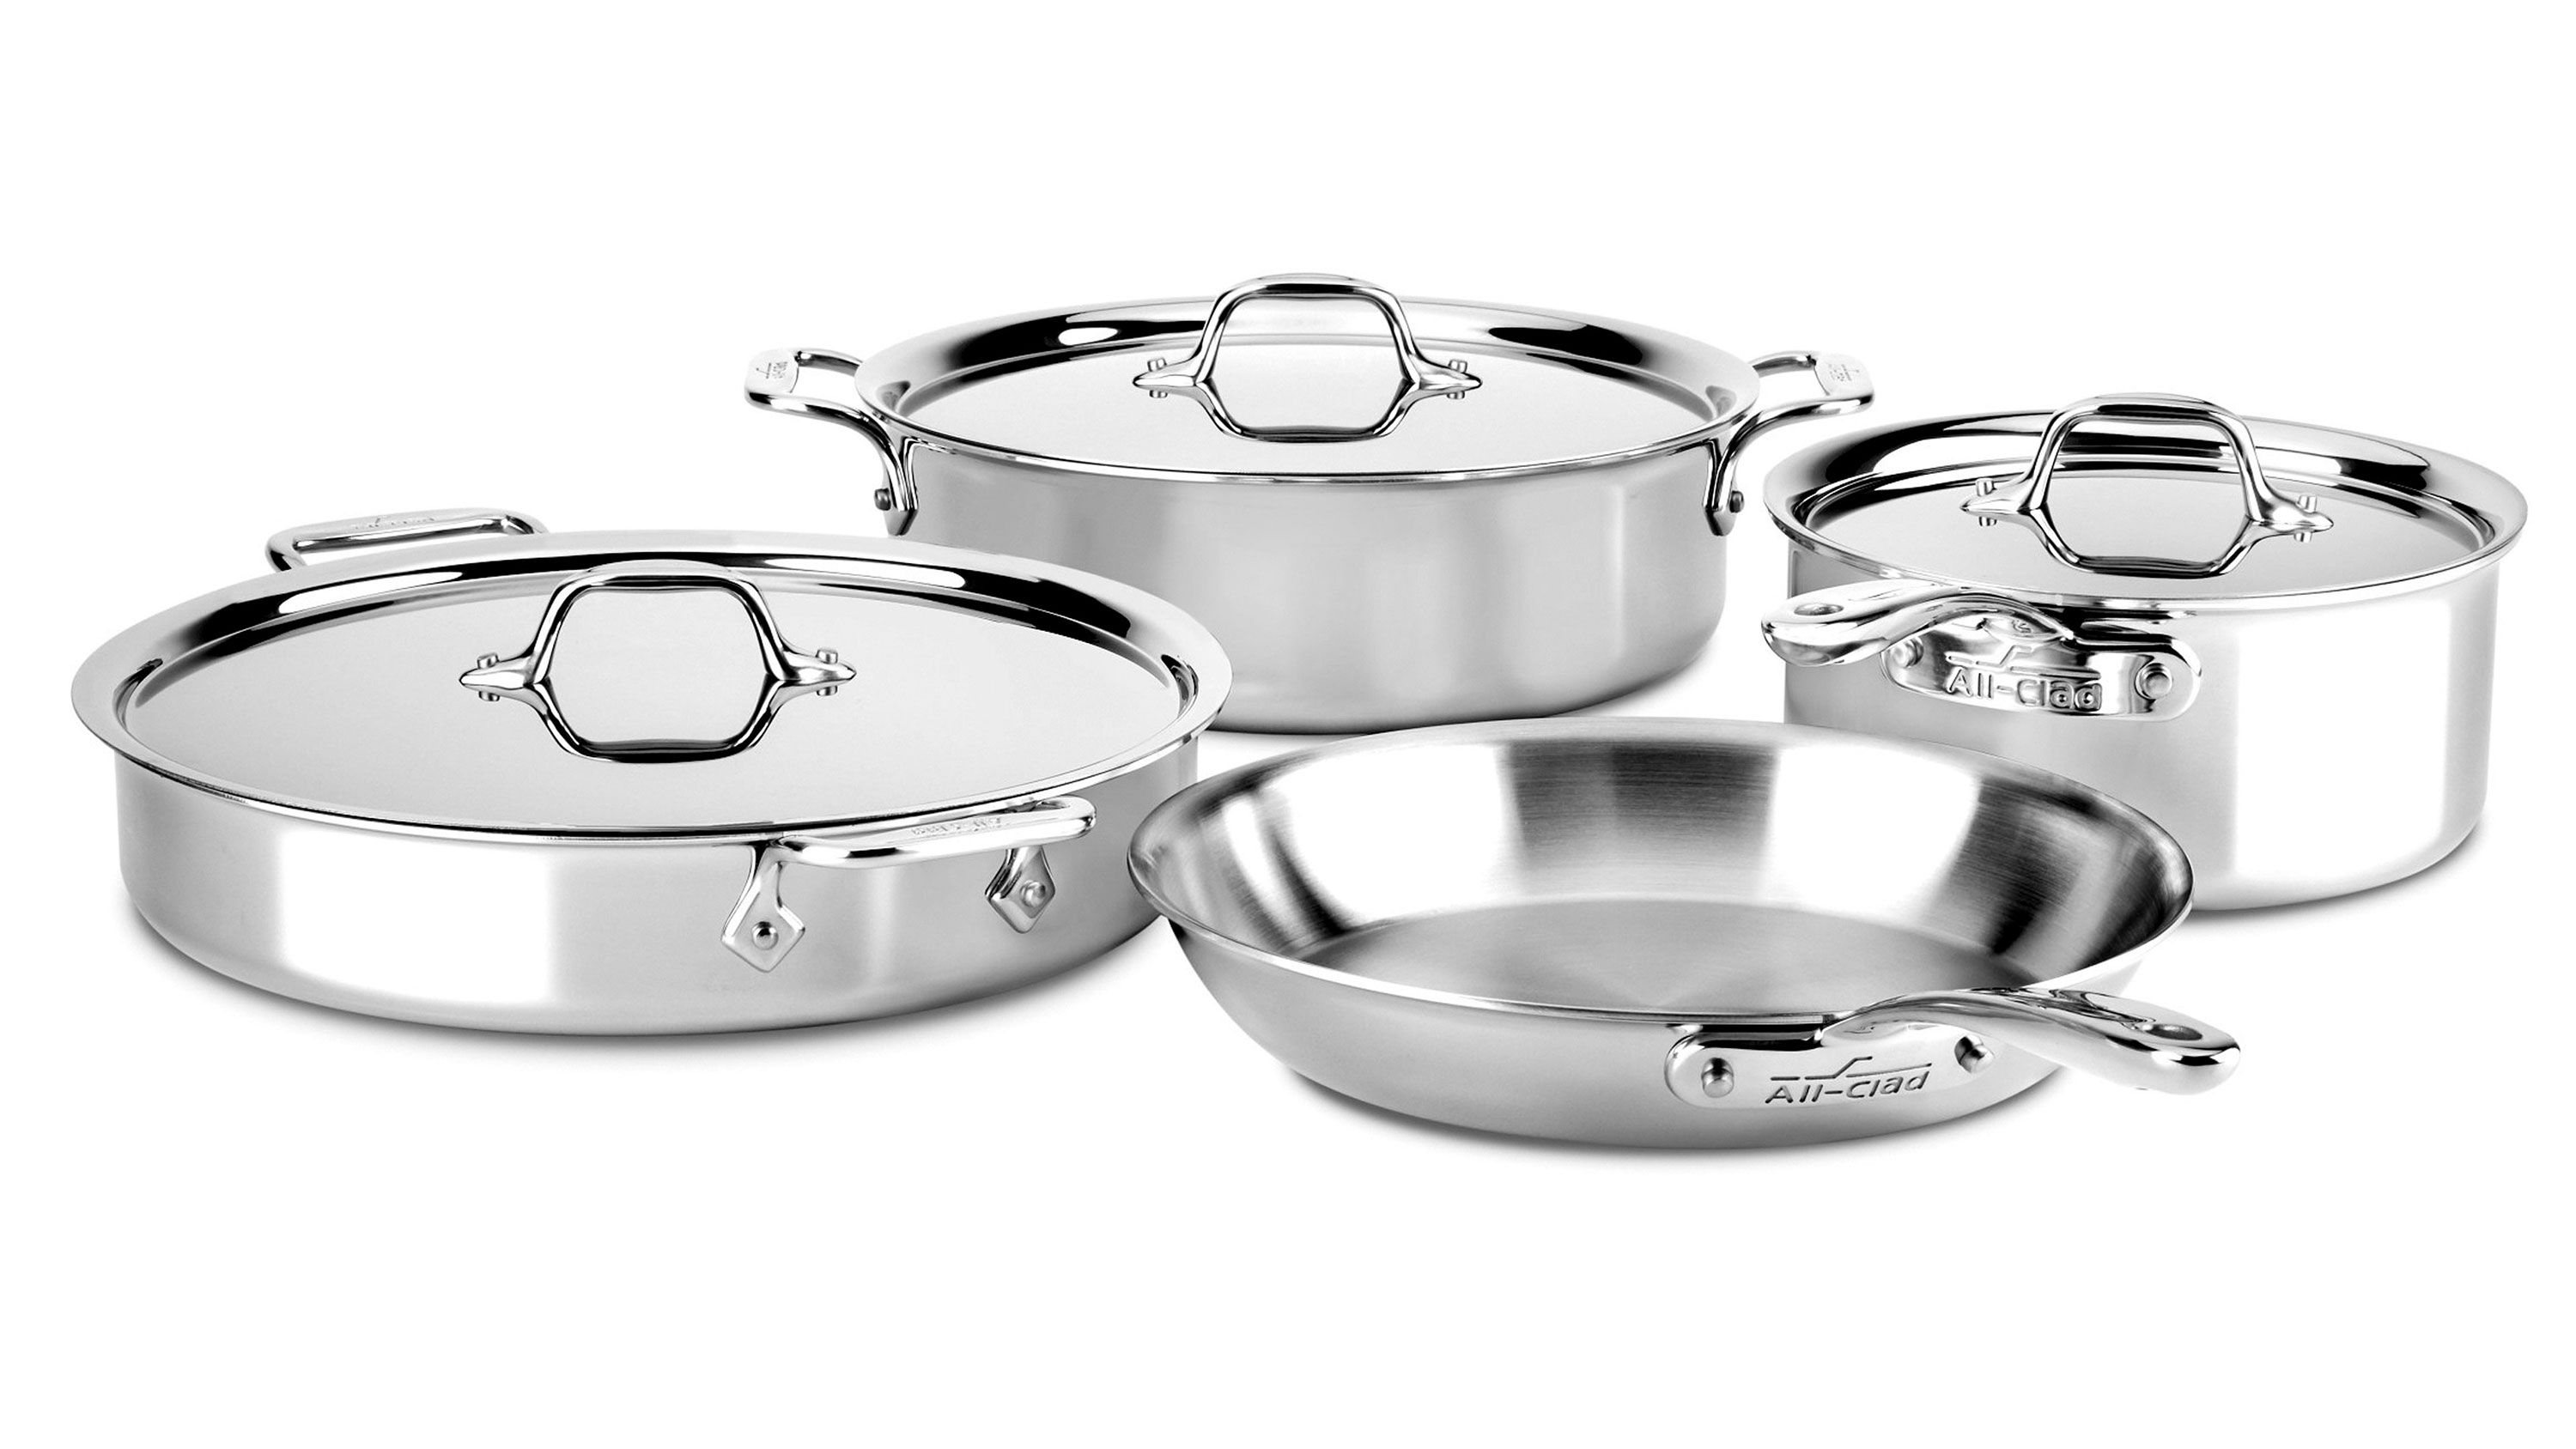 All Clad D3 Stainless Compact Cookware Set 7 Piece Cutlery And More In 2021 Cookware Set Safest Cookware Dishwasher Safe Cookware All clad 7 piece set